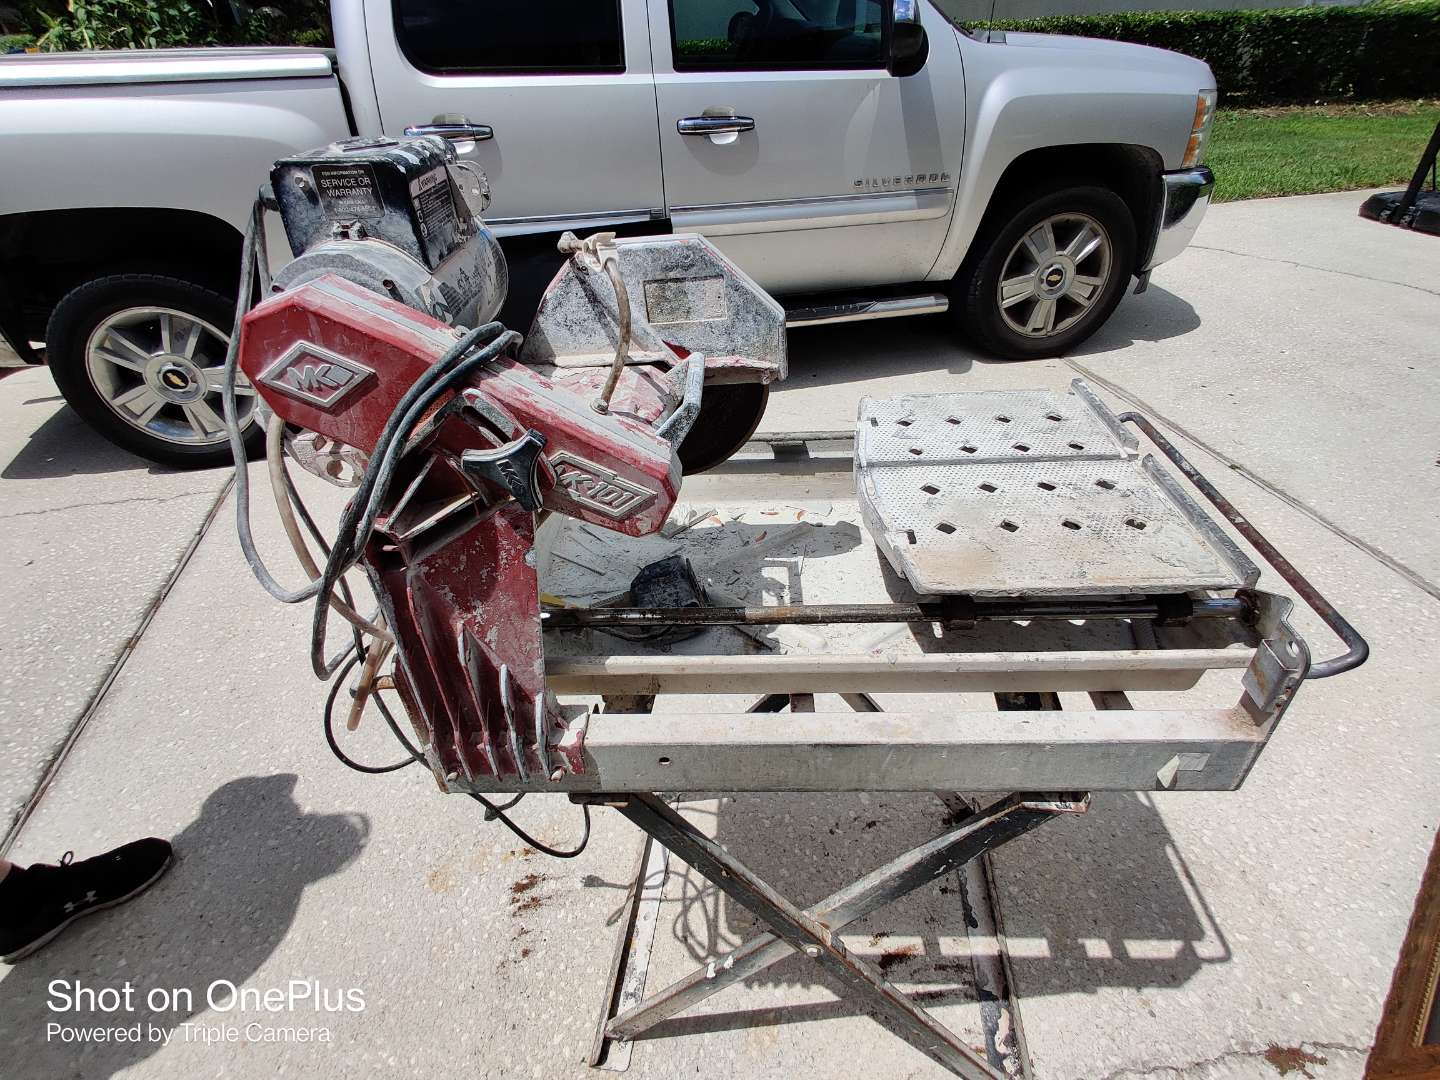 399 MK 101 tile cutter with stand